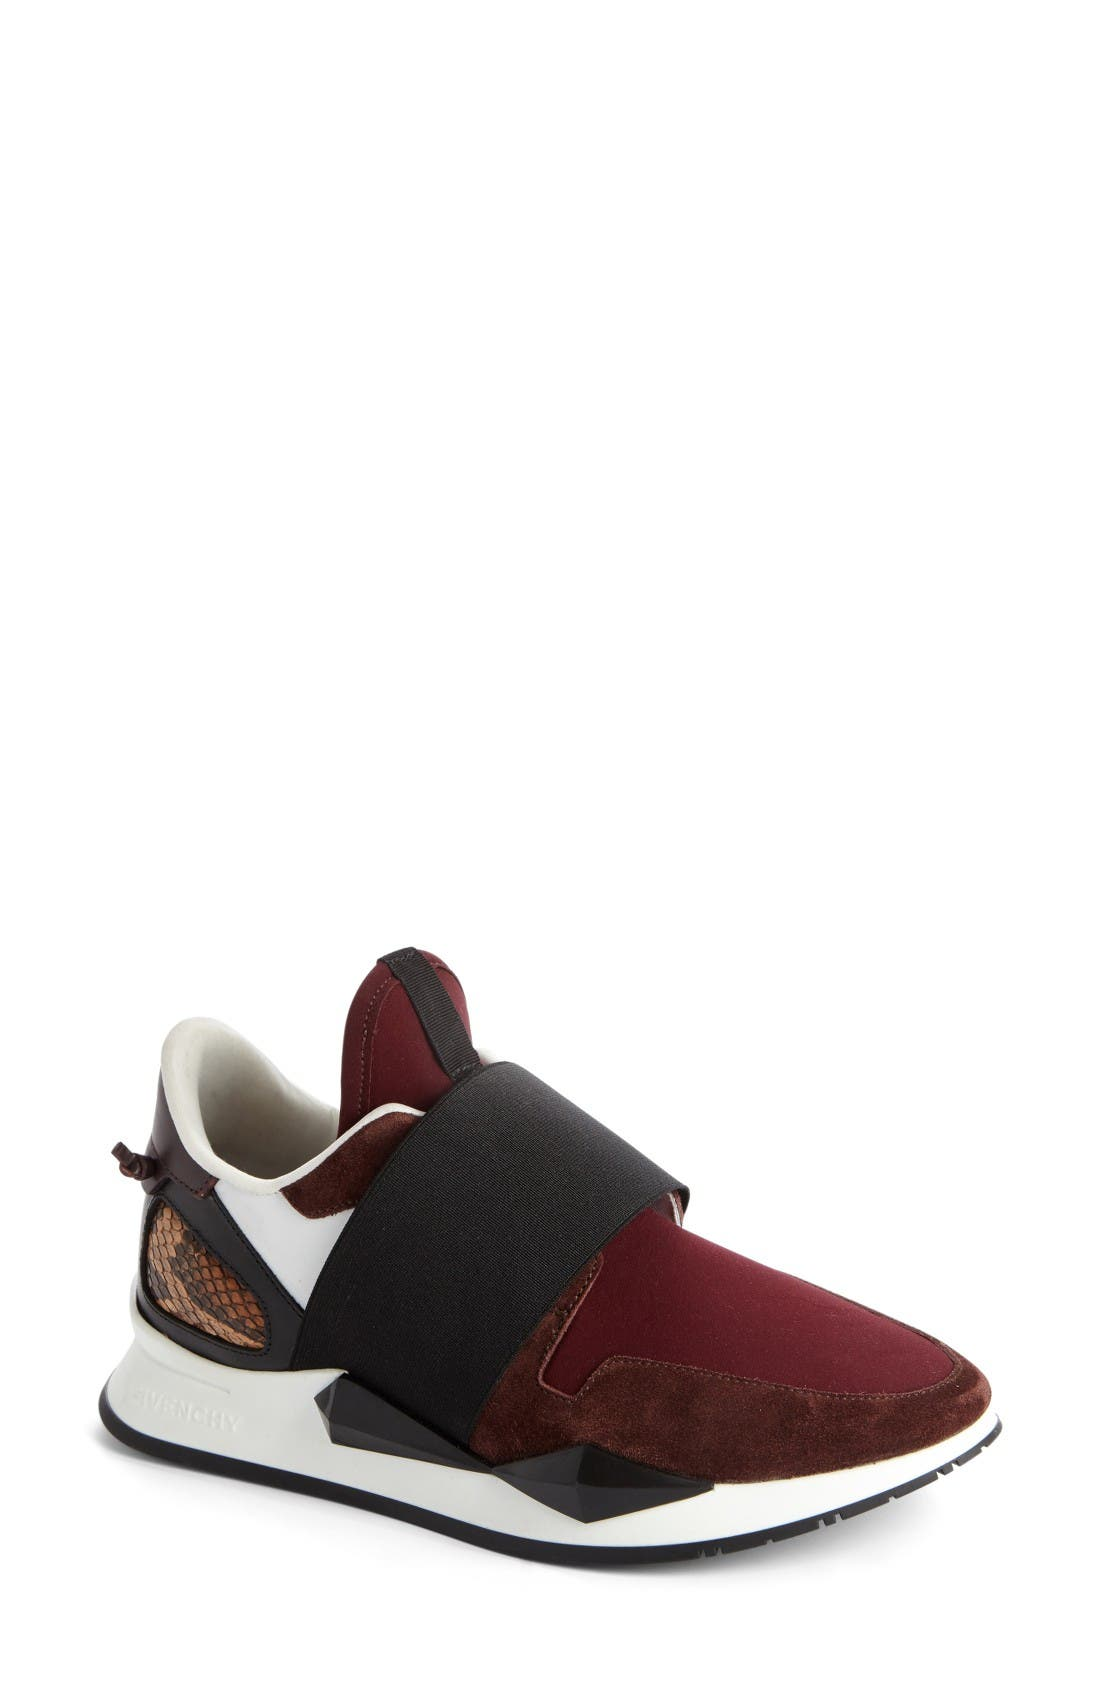 Givenchy Slip-On Sneaker (Women)